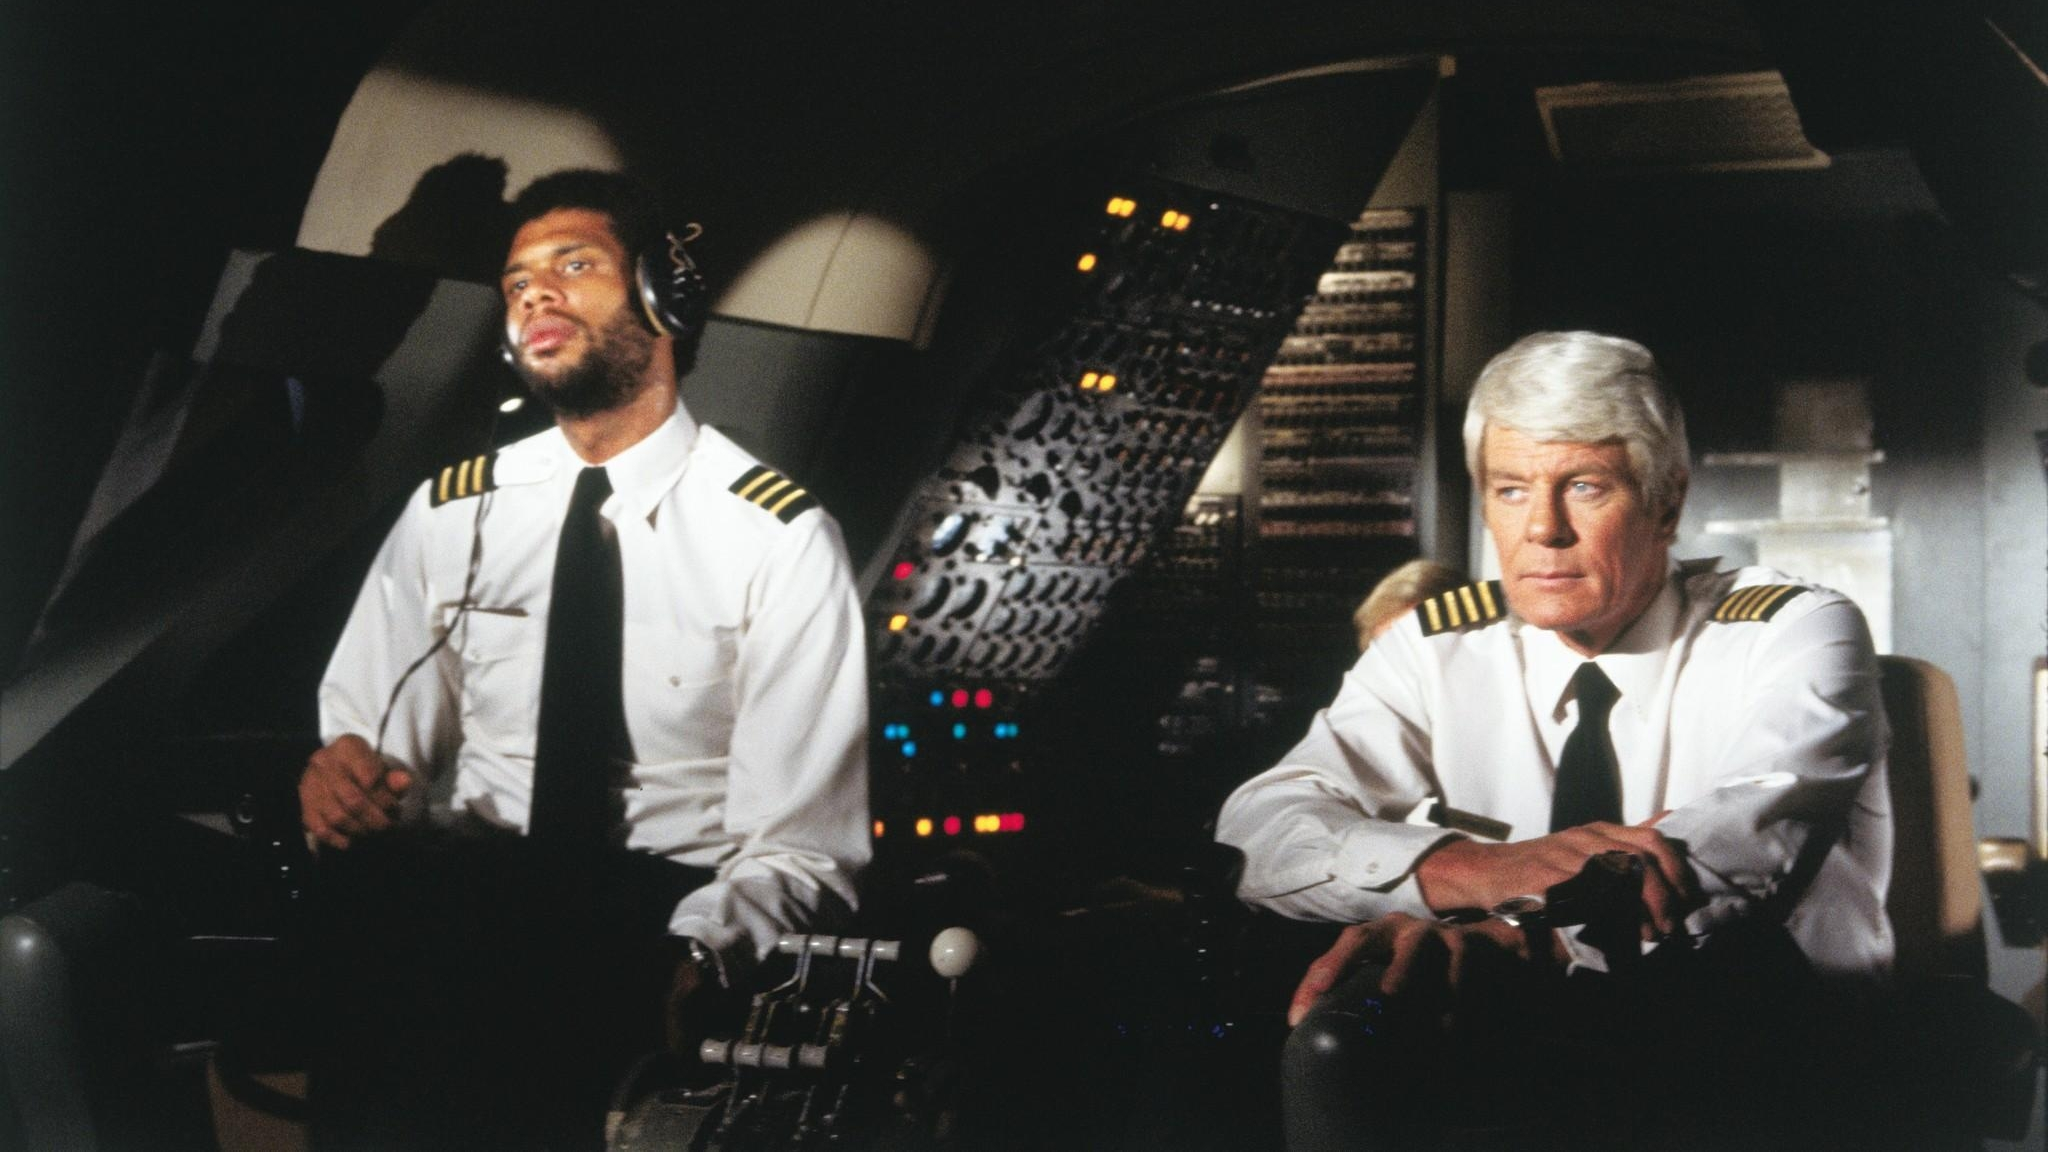 #13) Airplane! - (1980 - dir. David Zucker)